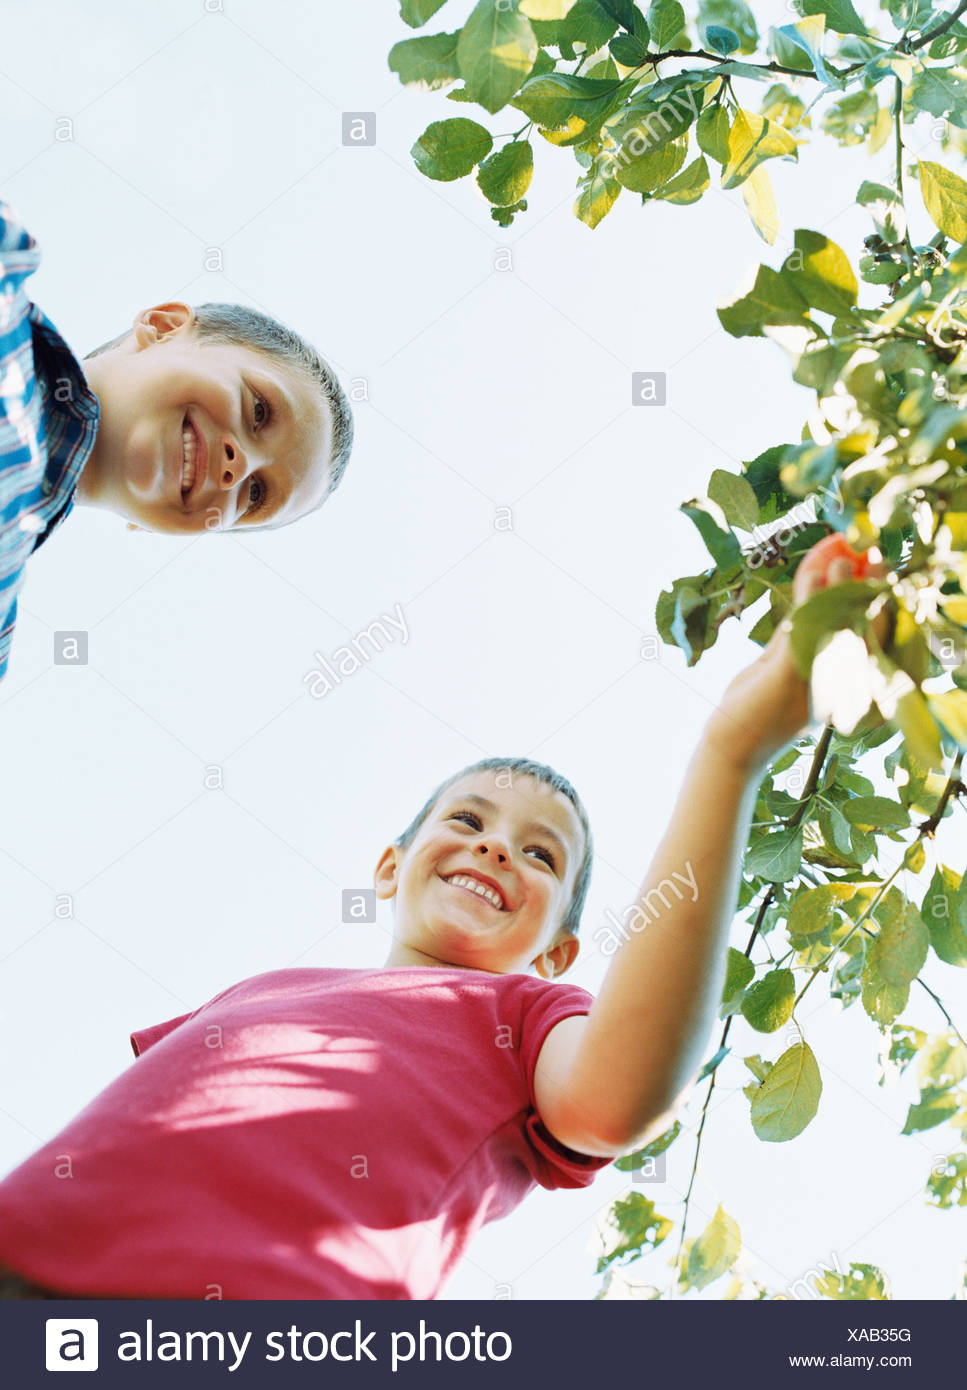 Boys picking fruit from a tree - Stock Image